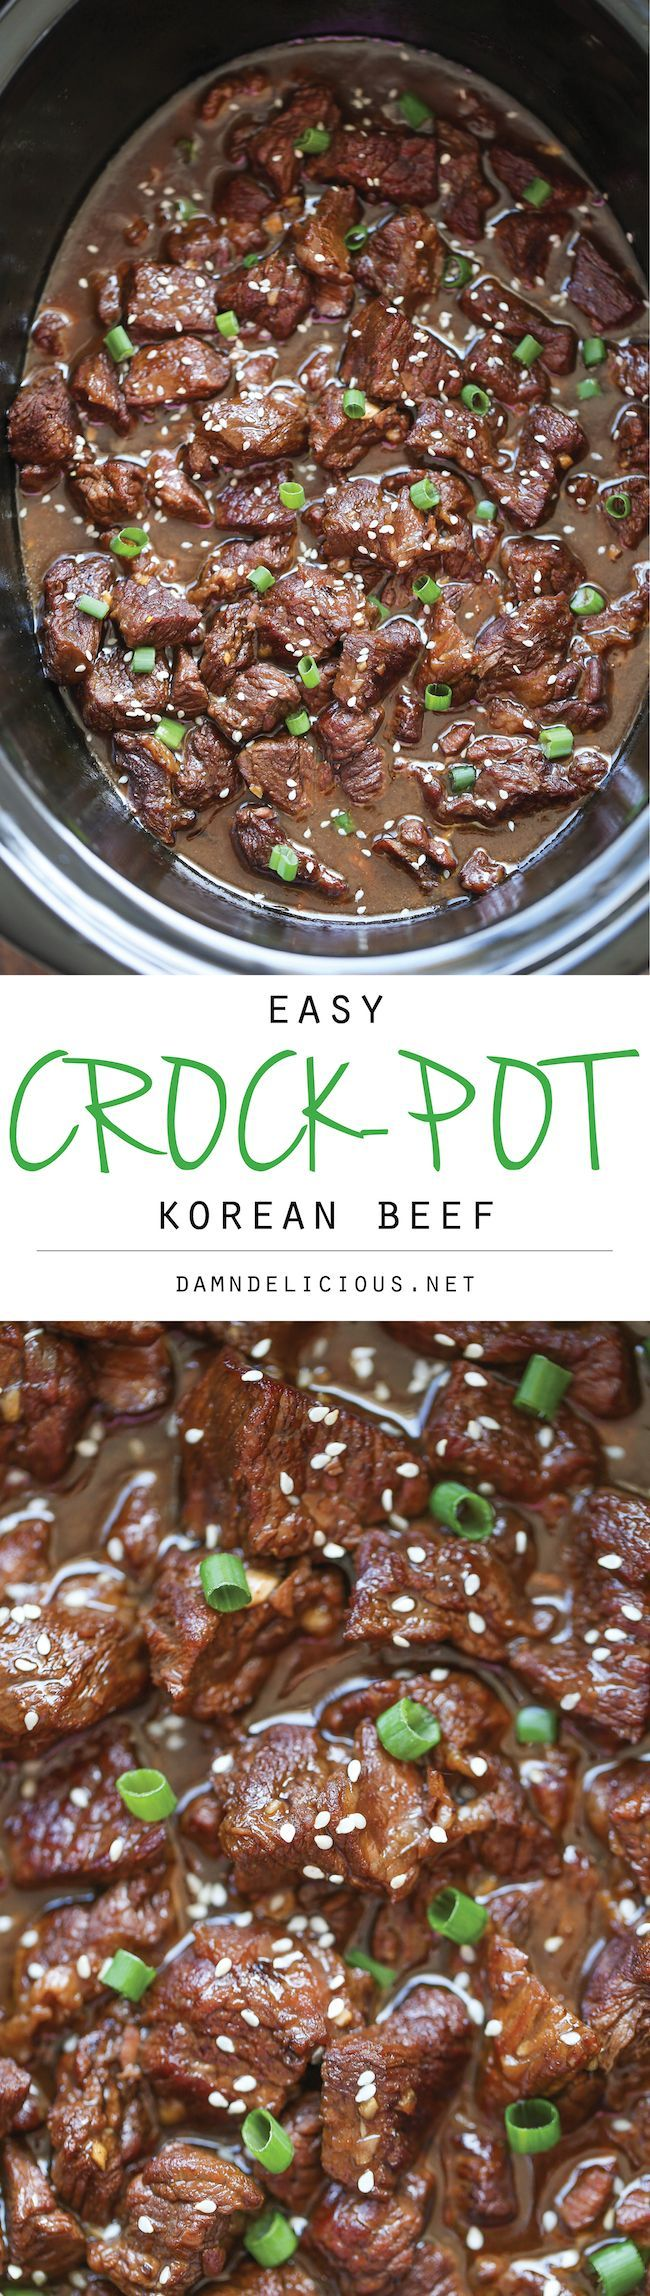 Slow Cooker Korean Beef - Amazingly tender, flavorful Korean beef easily made in…